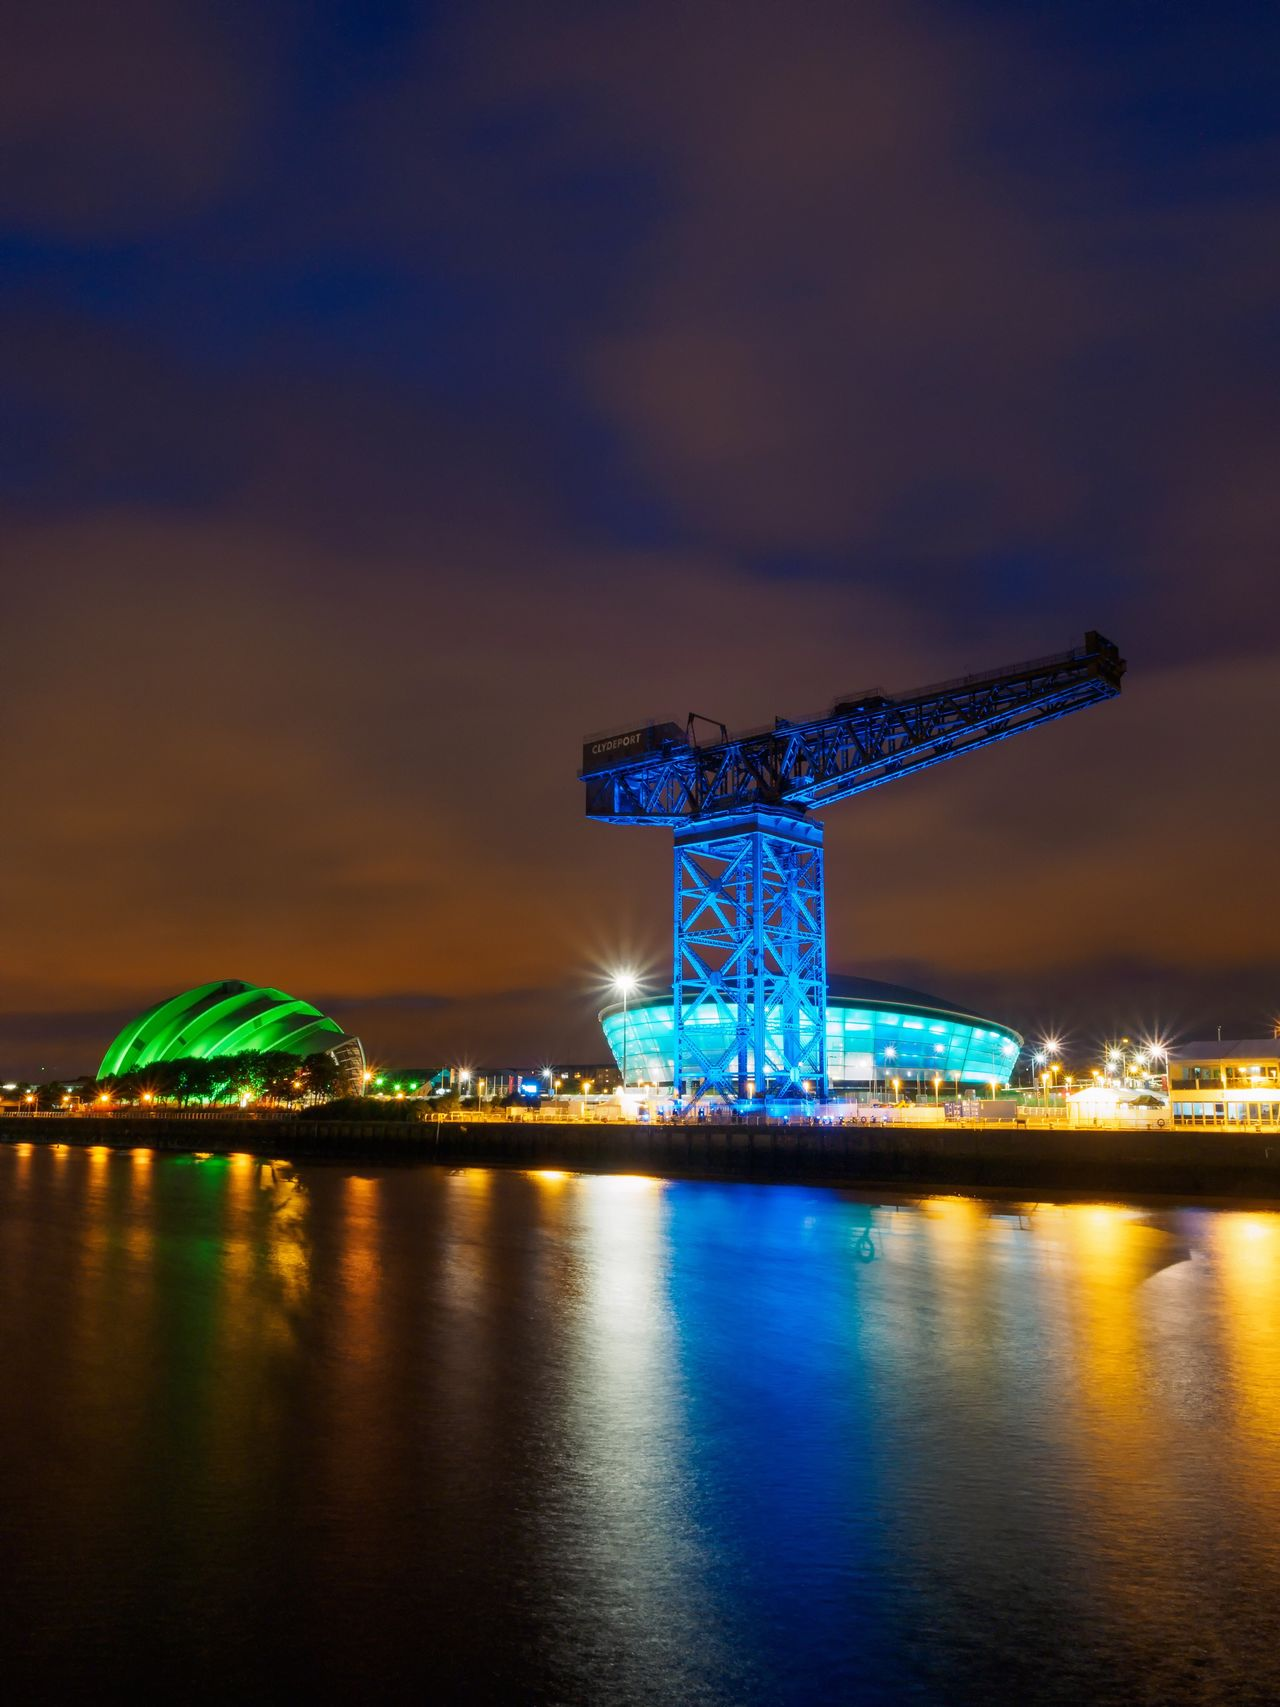 The River Clyde at night. RiverClyde Glasgow  Night Nightphotography Scotland Architecture Illuminated Finnieston Crane Pacificquay Clyde Ssehydro Armadillo Crane City Cityscape